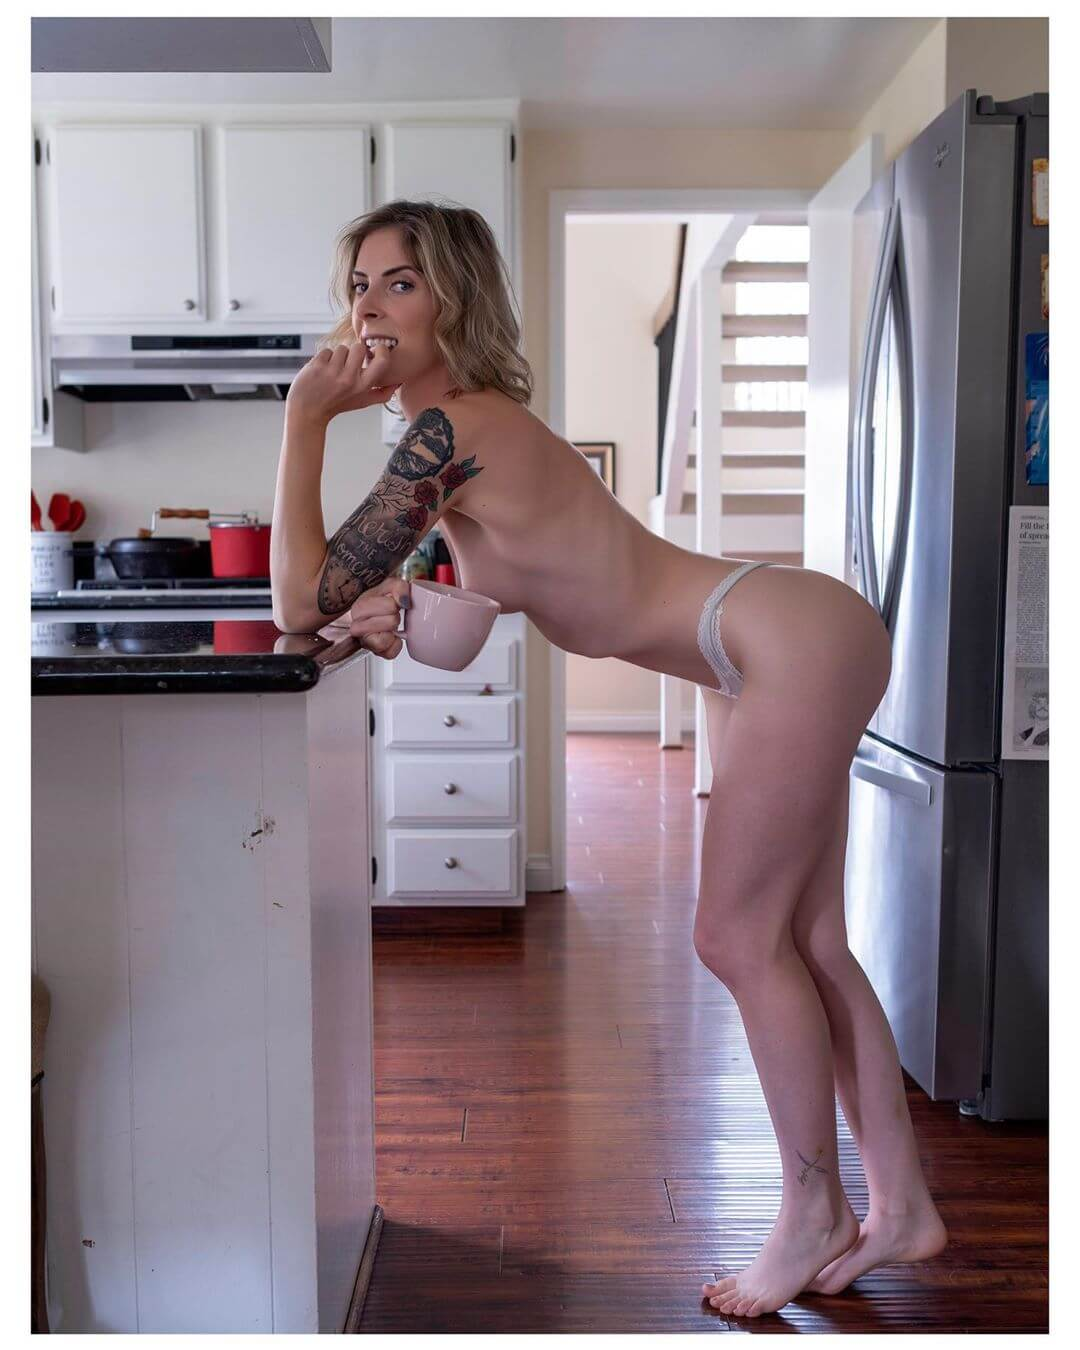 Beautiful blonde American model Cherish @cherishthemodel in the nude barefoot in a kitchen hiding her bare breast with a coffee mug biting her finger showing her perfect fit body and sexy legs for a boudoir photo session